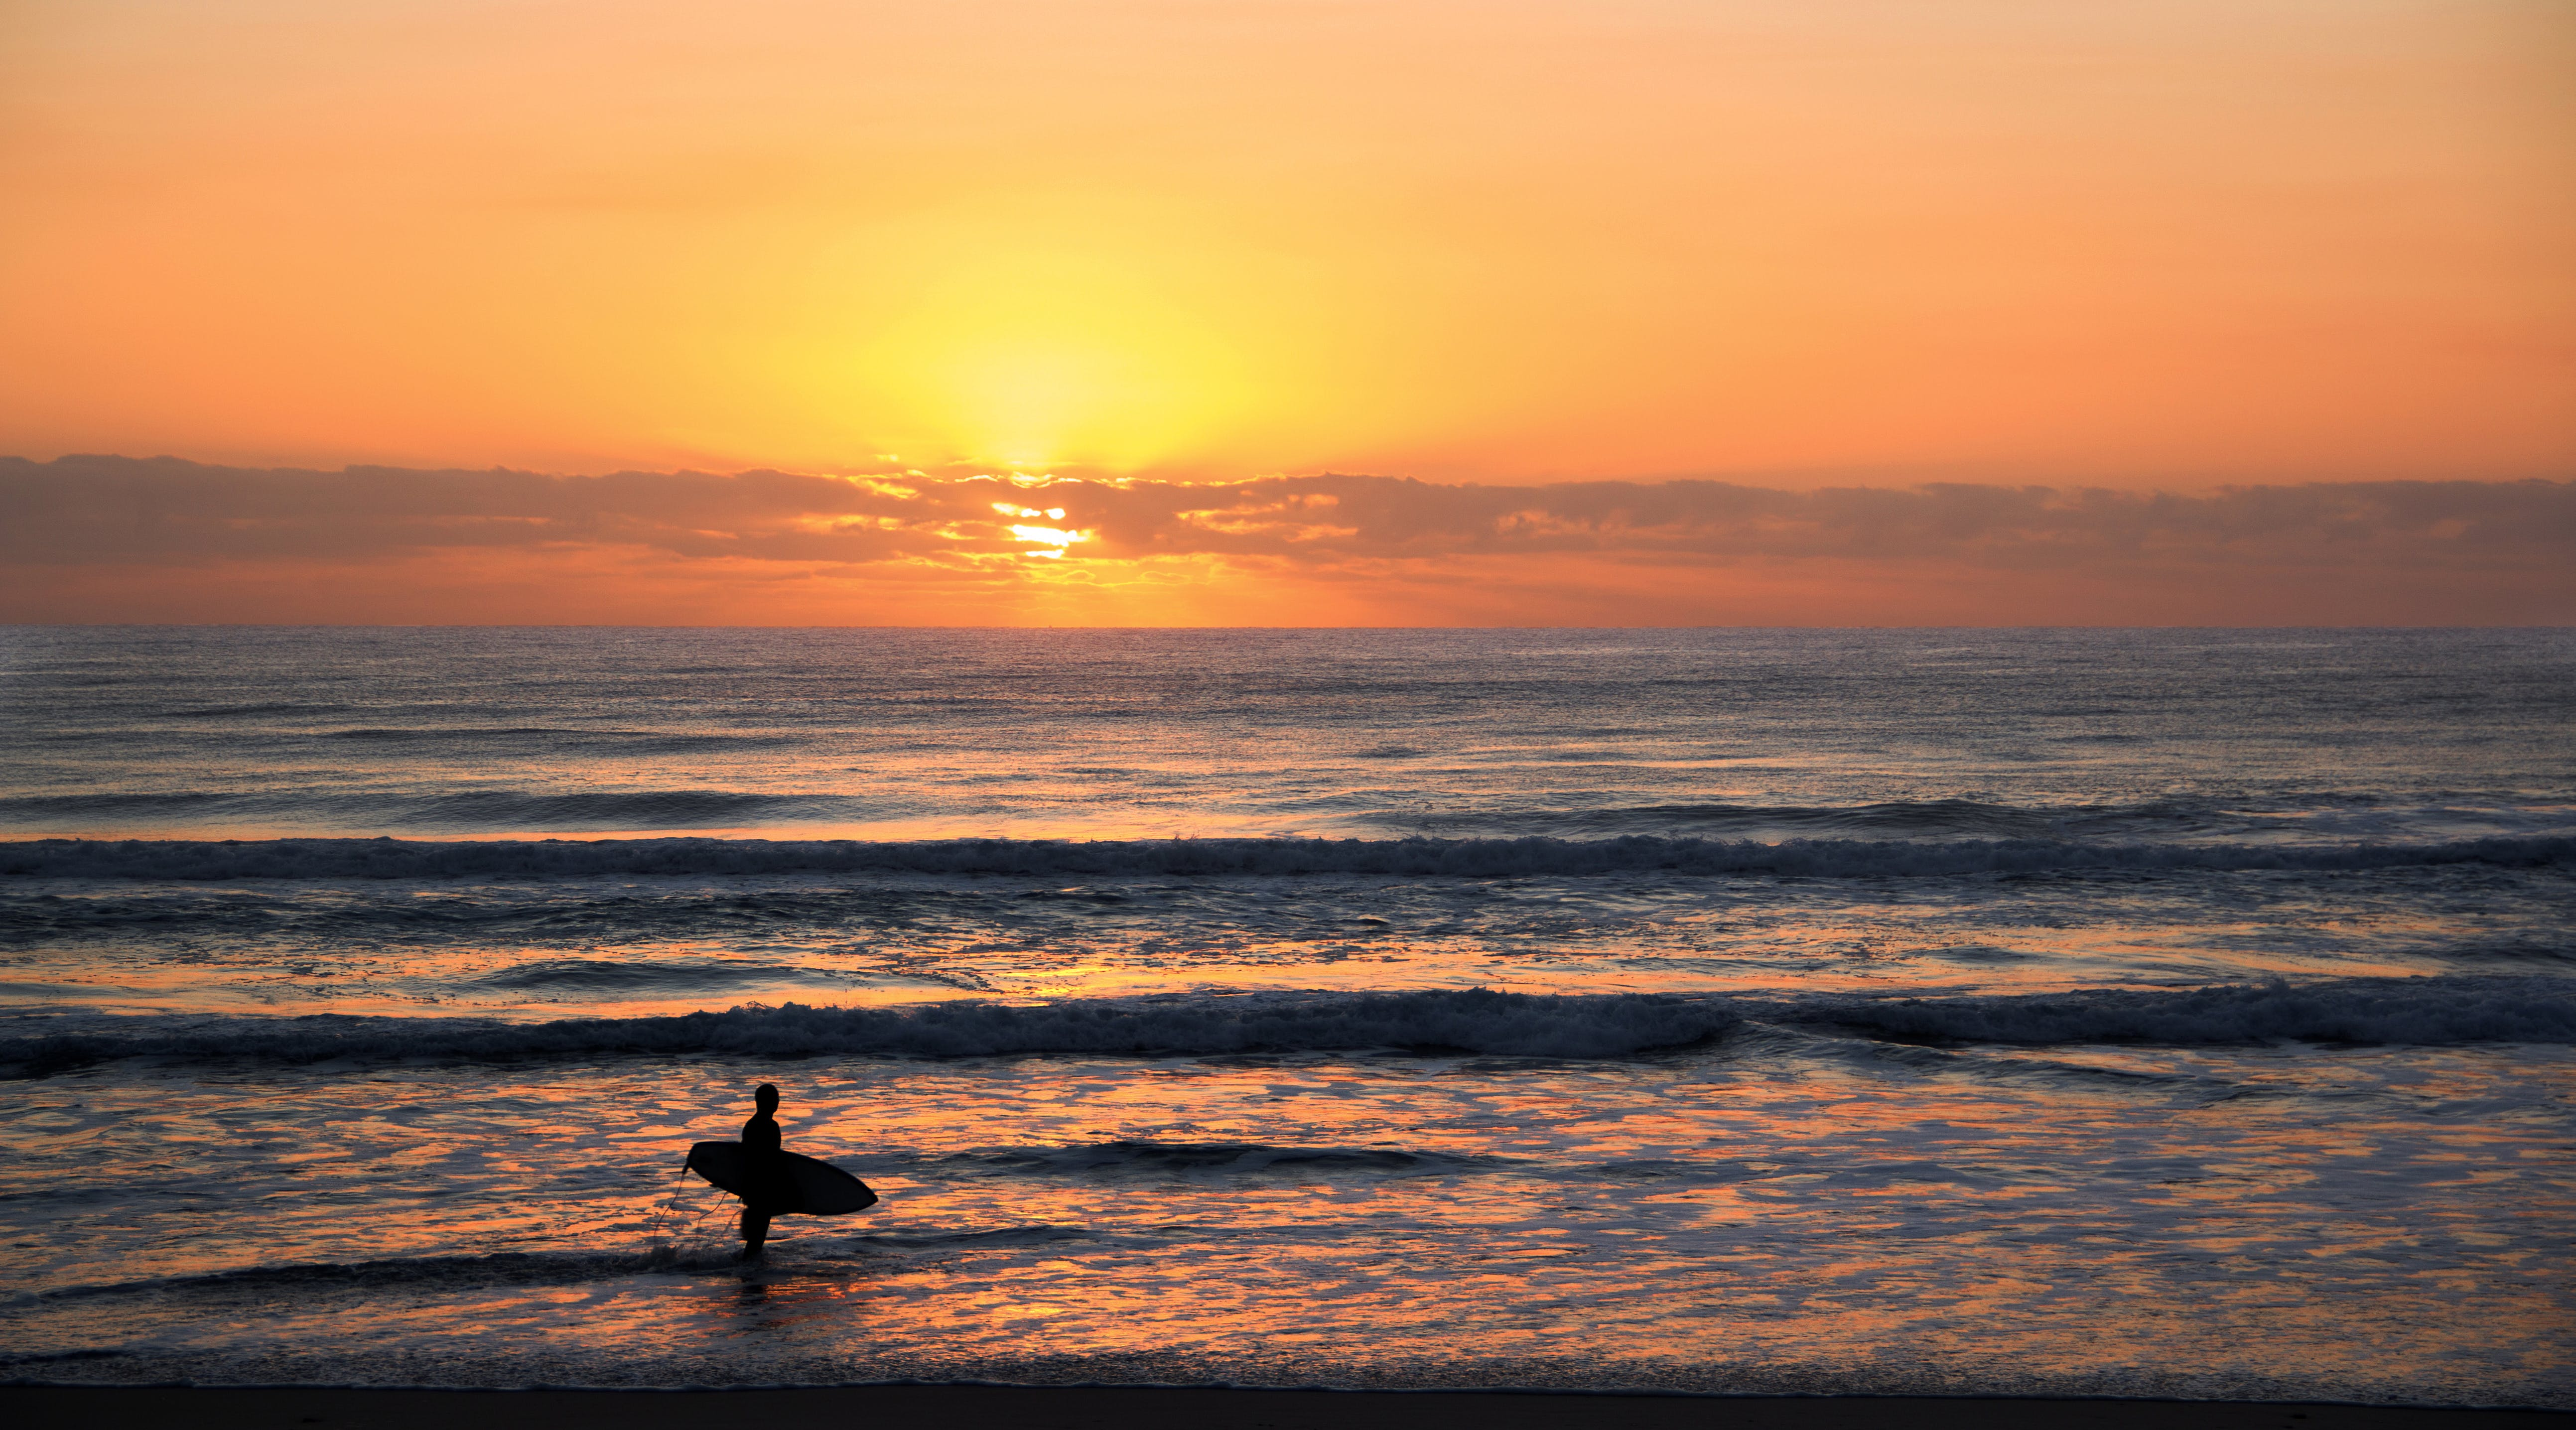 Photo of Surfer in Rule of Thirds Photography during Sunset